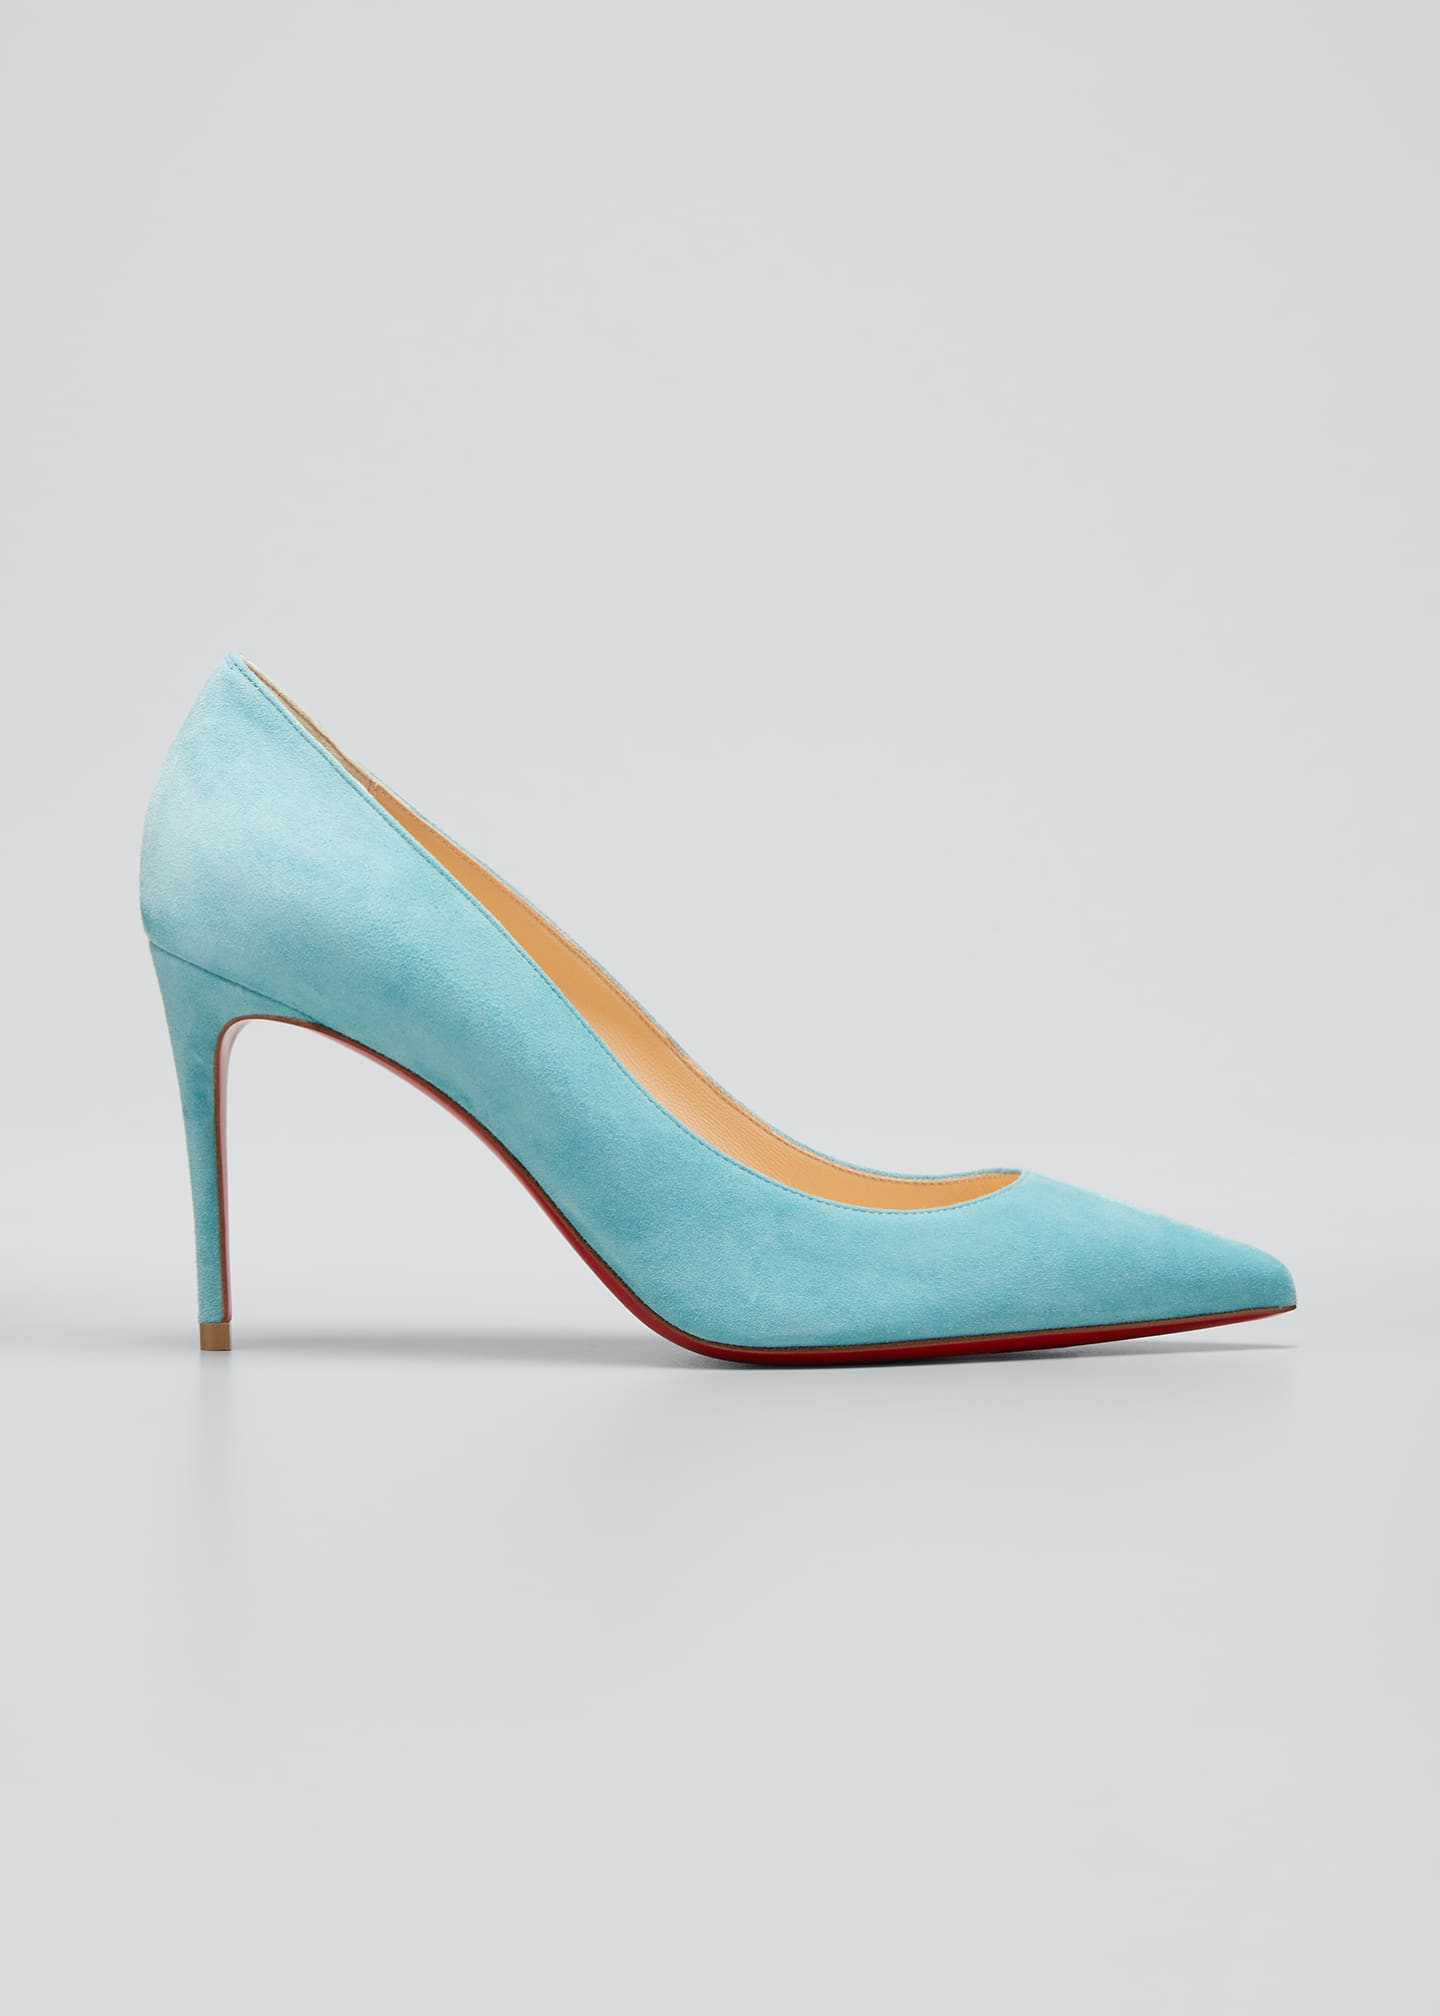 Christian Louboutin Kate Red Sole Suede Pumps